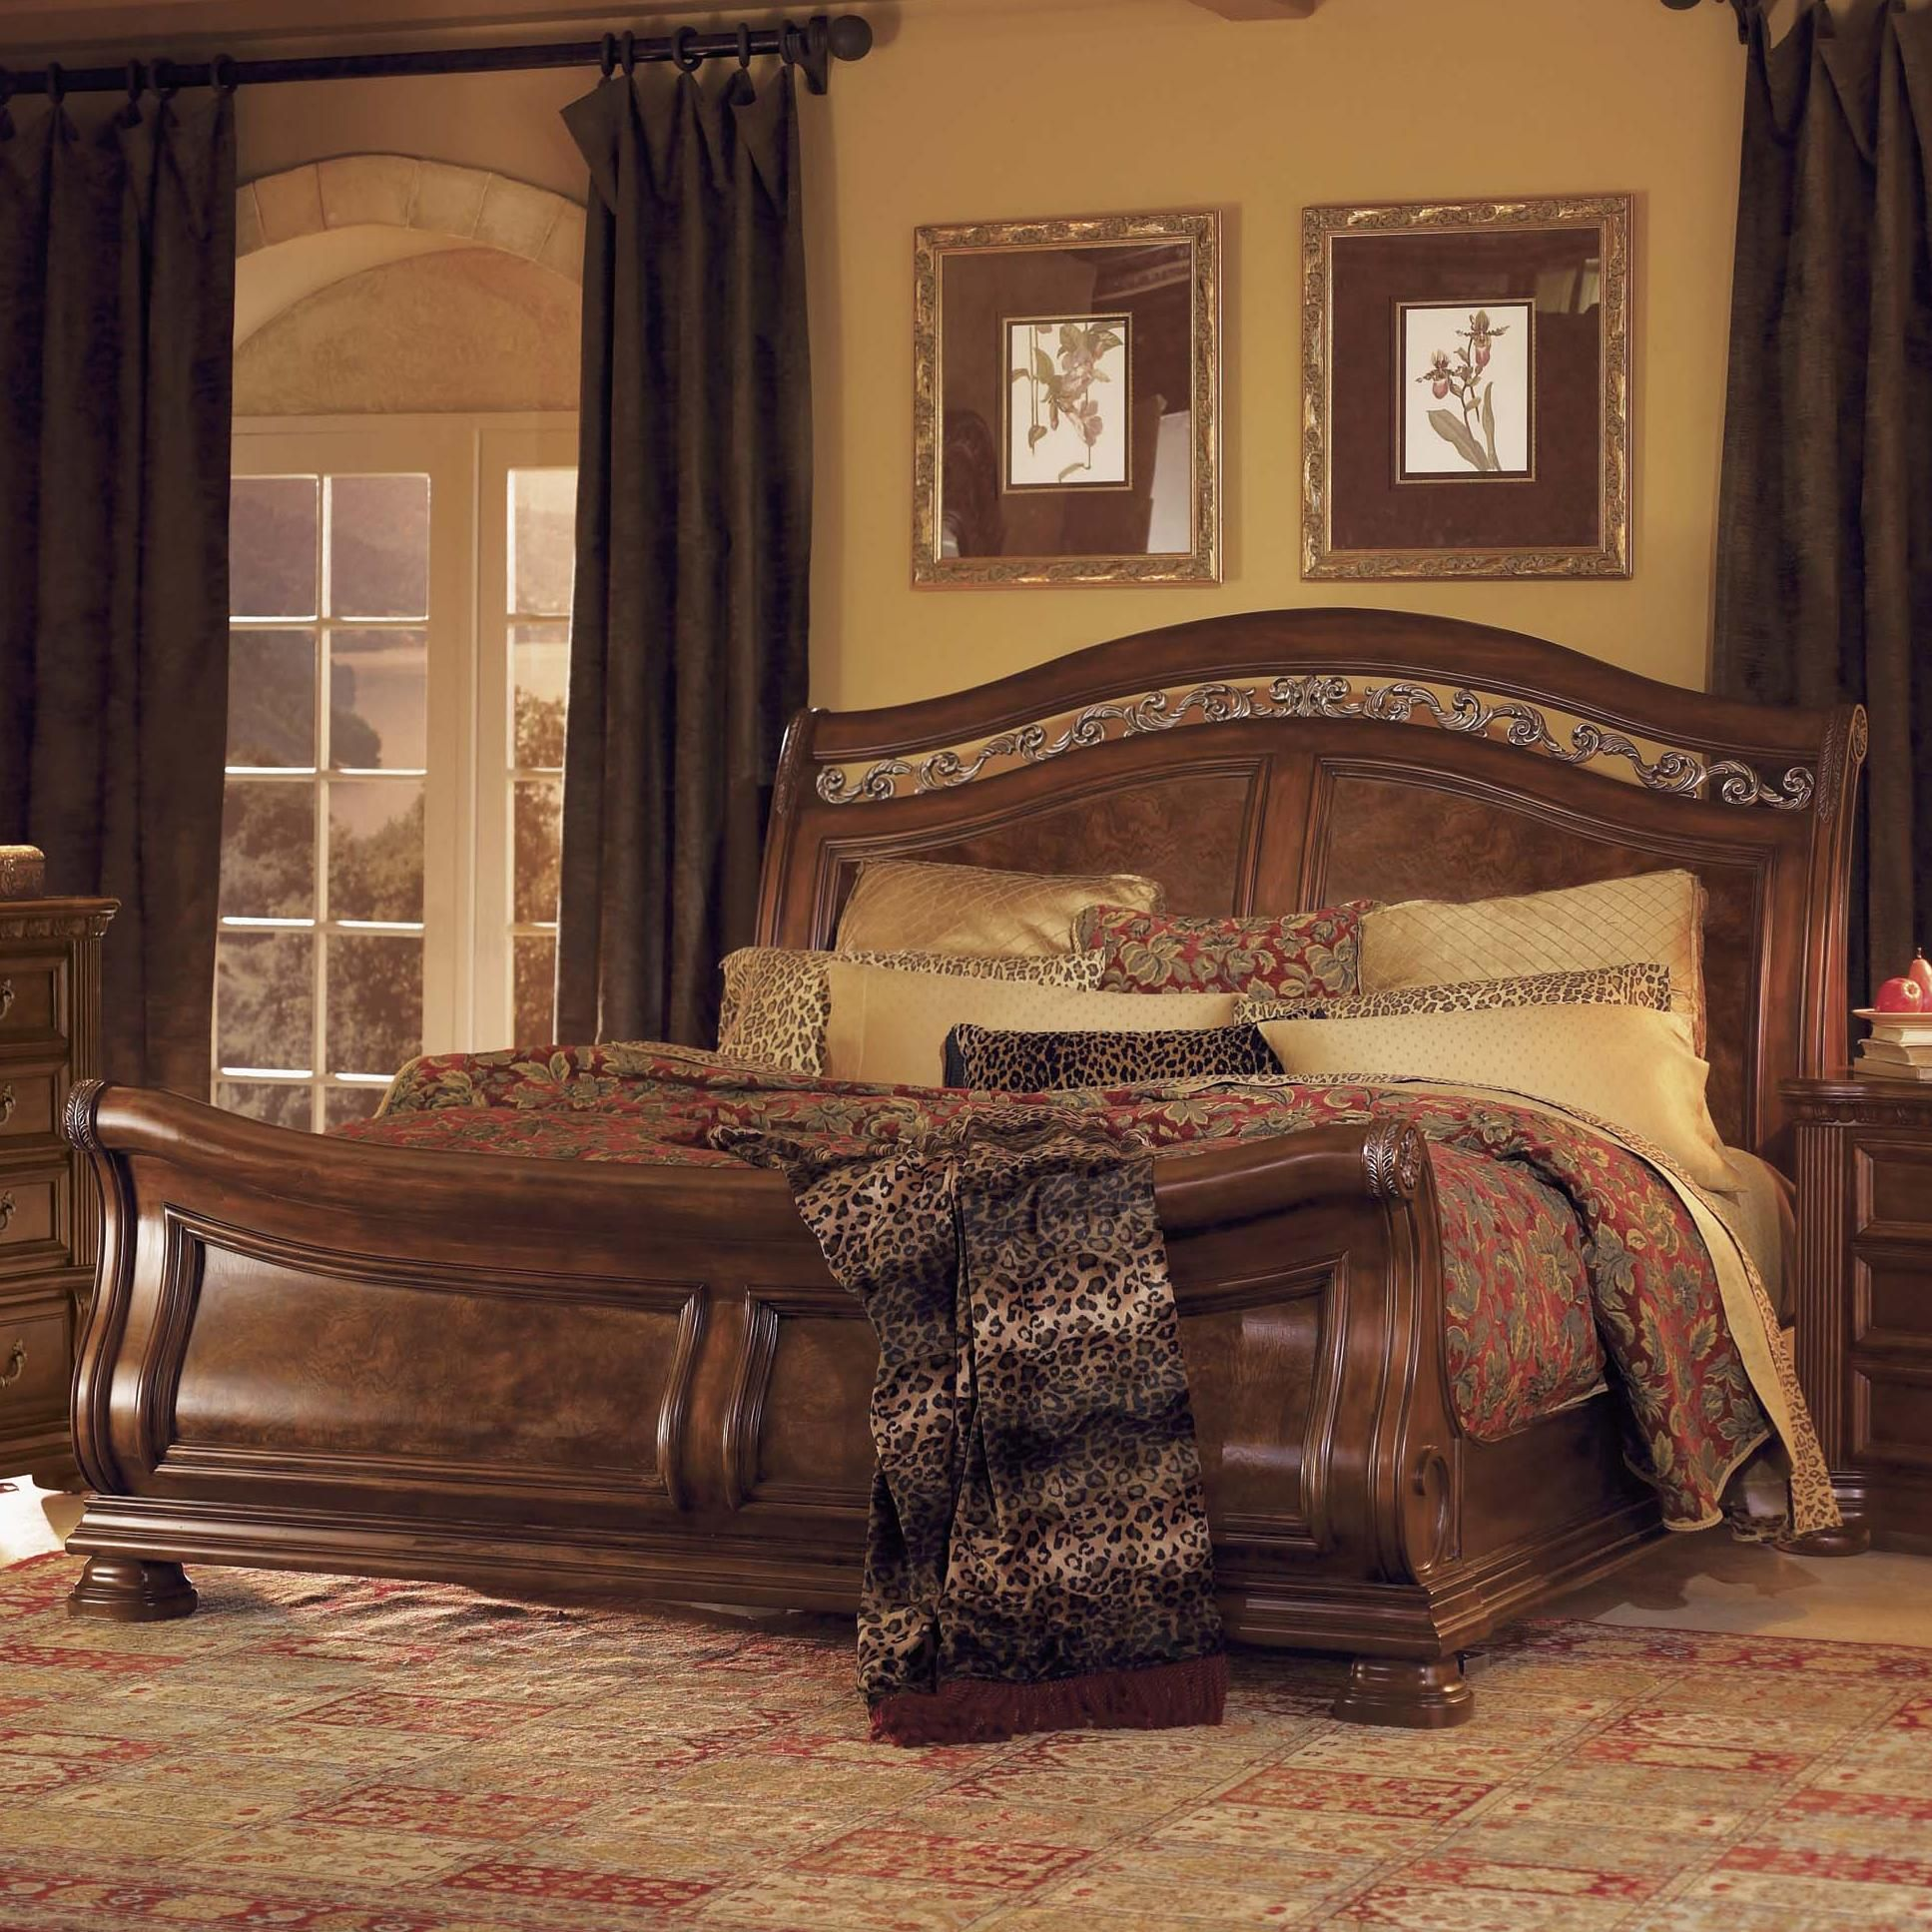 granada king sleigh bed by flexsteel wynwood collection 15762 | 296506866a56a31ba5fa02397c5117ab